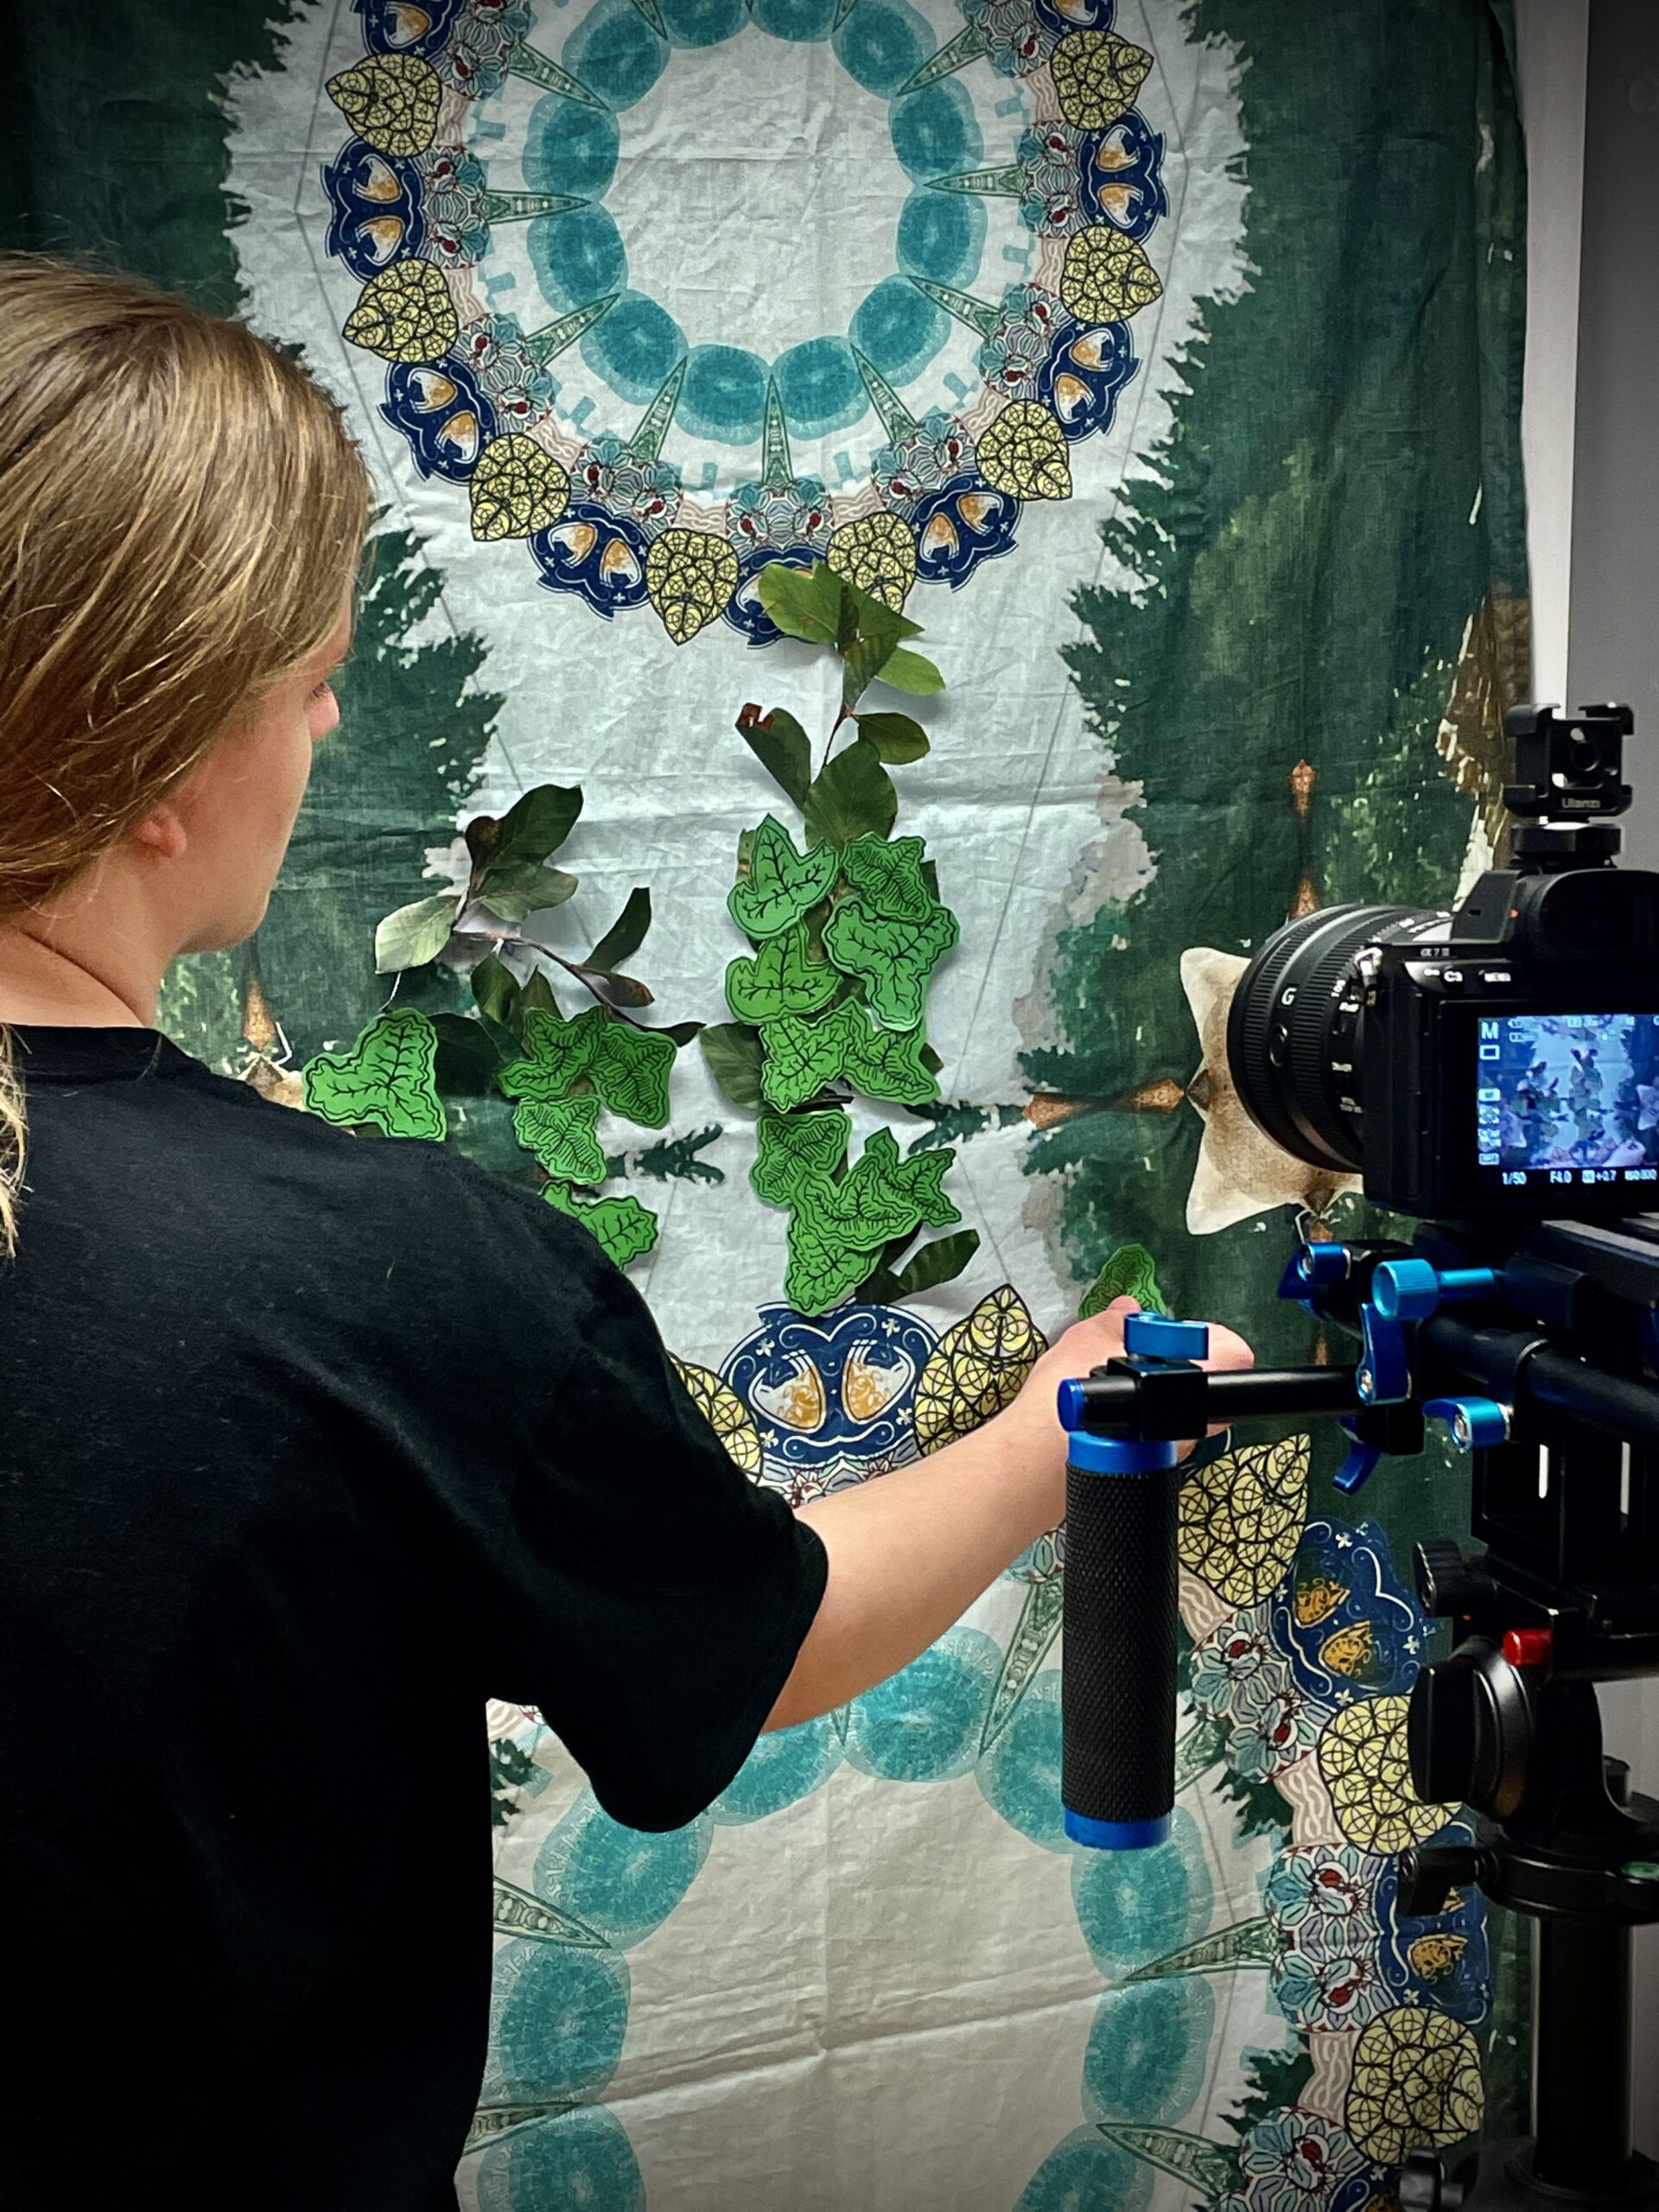 A young participant sticks hand drawn leaves to a colourful background whist being filmed with a camera.